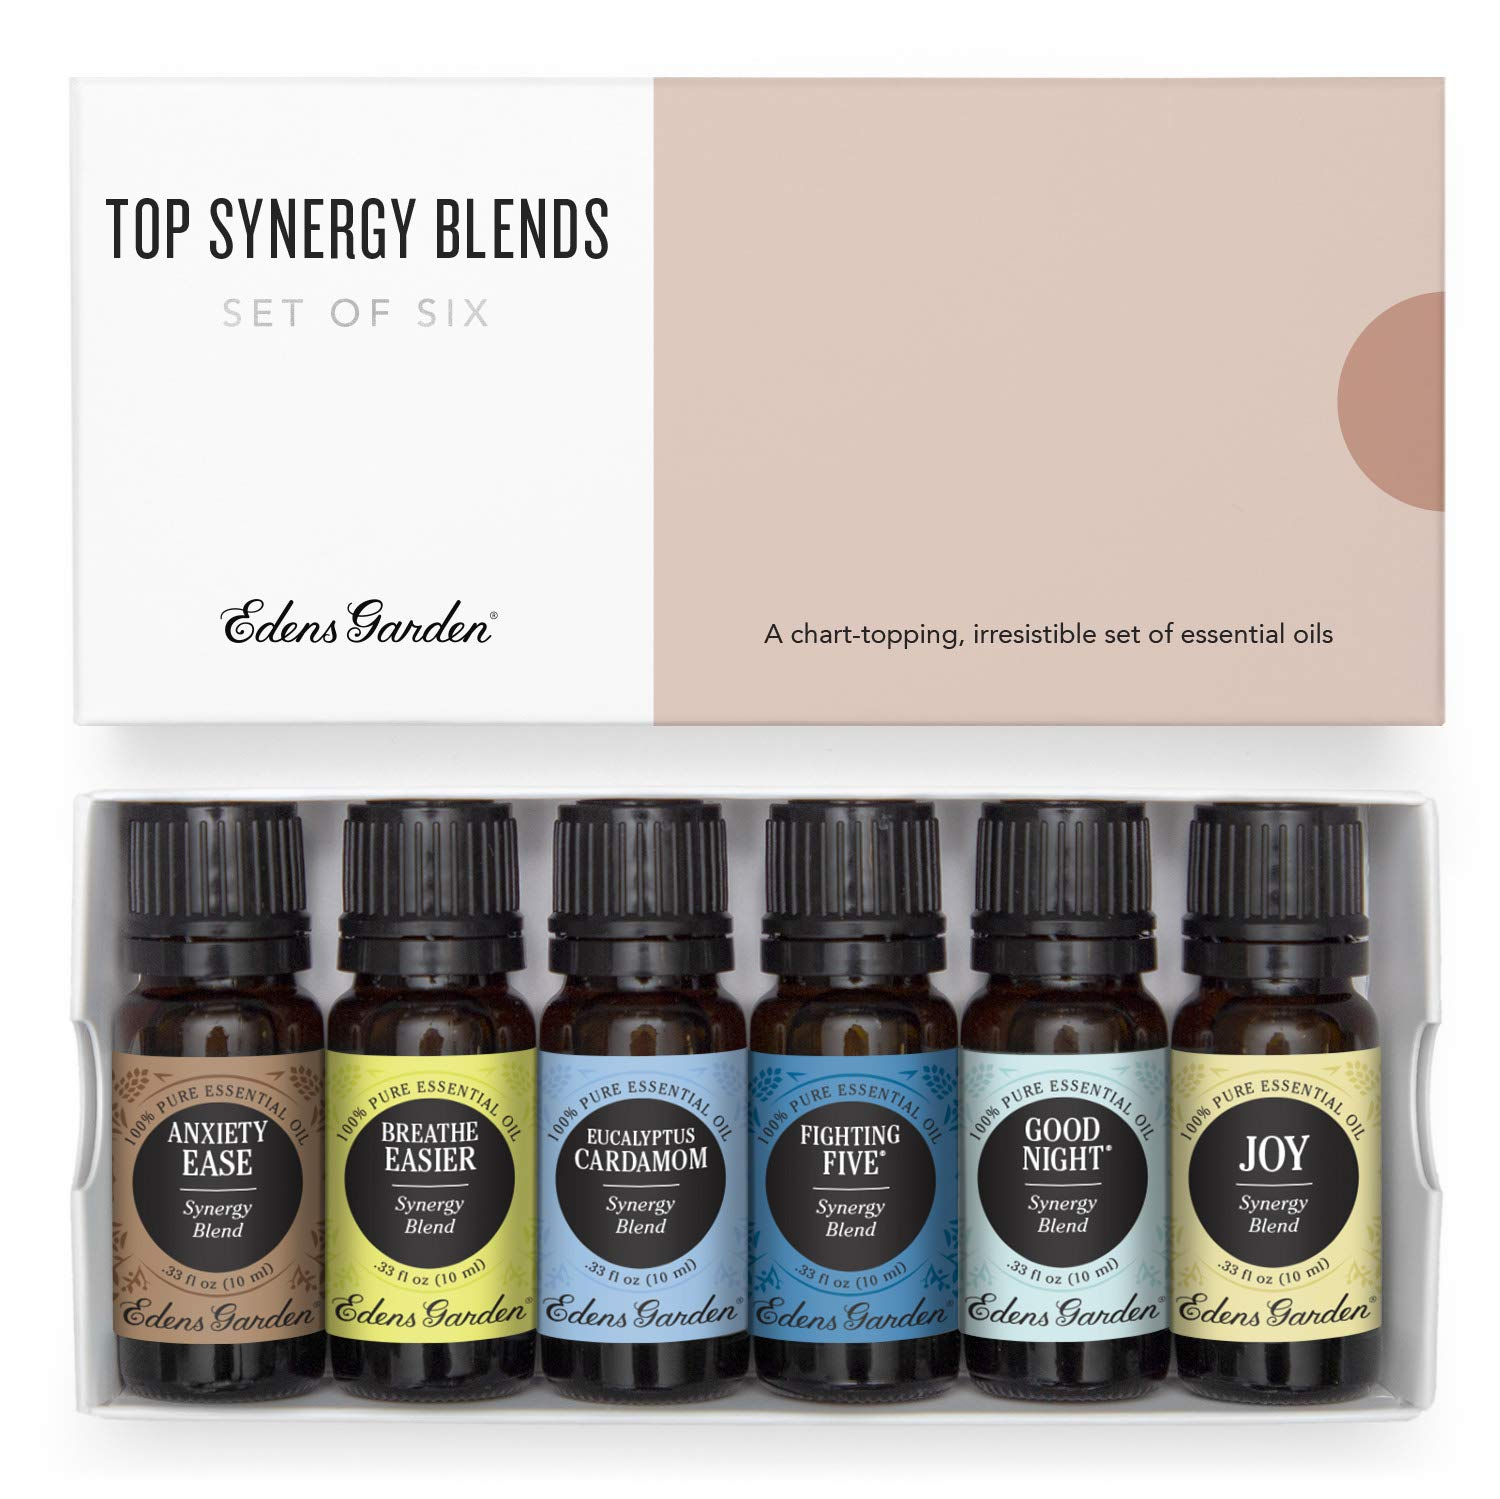 Edens Garden Top Synergy Blend Essential Oil 6 Set, Best 100% Pure Aromatherapy Starter Kit (For Diffuser & Therapeutic Use), 10 ml